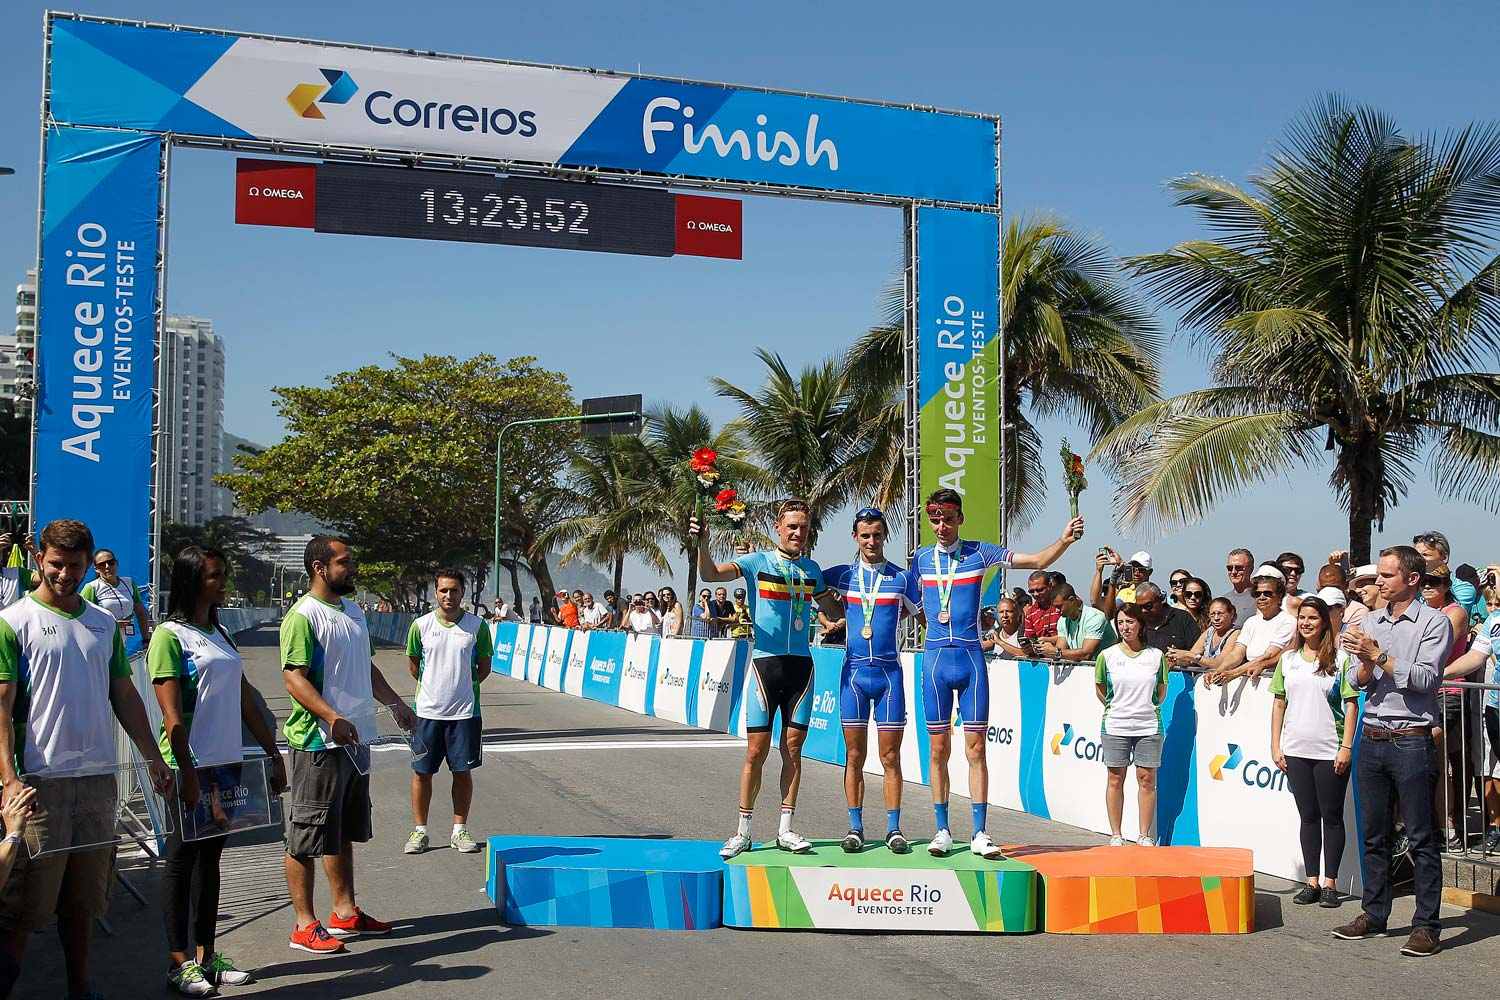 The podium of last year's Rio test event road race: Serge Pauwels (3rd), Alexis Vullermoz (1st) and Romain Bardet (2nd). Photo: Graham Watson